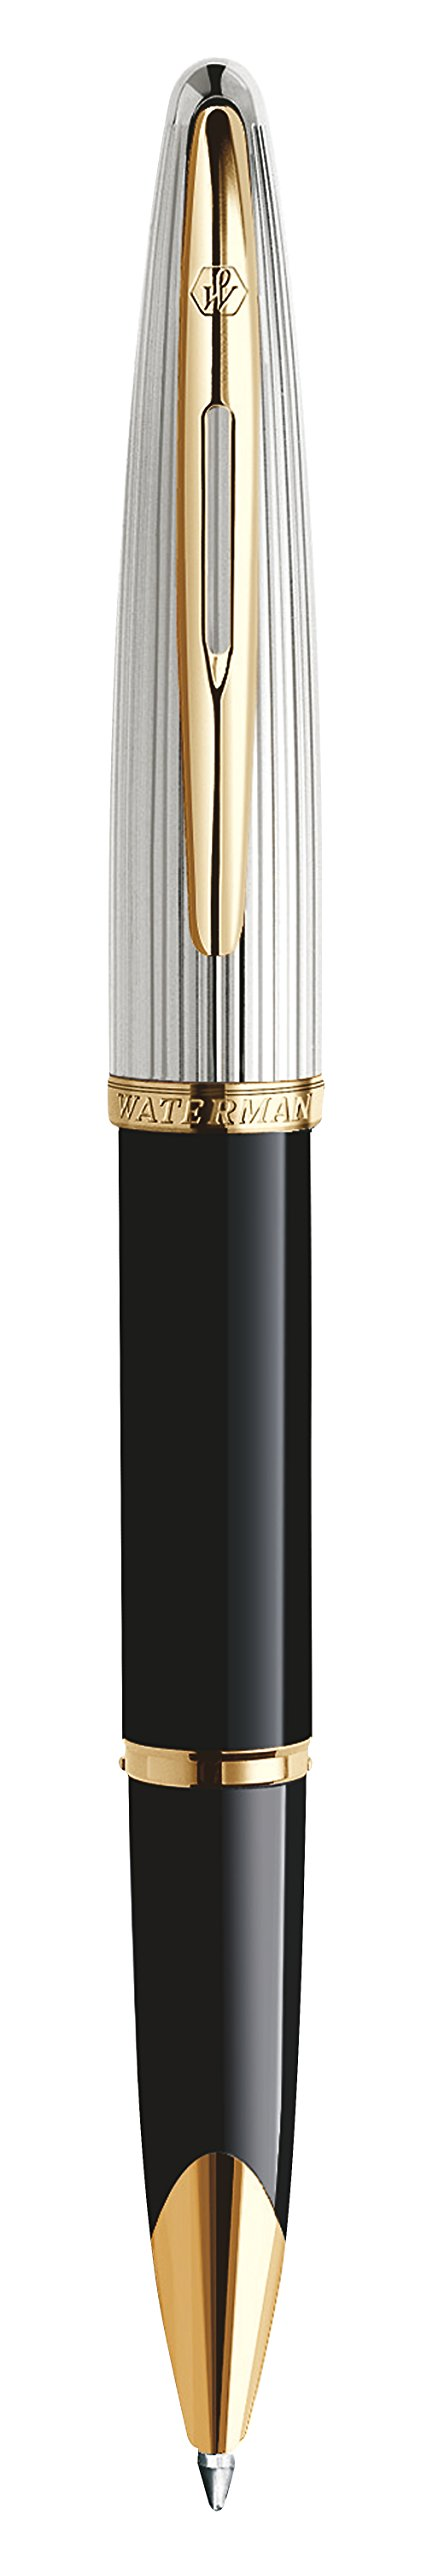 Waterman Carène Deluxe Rollerball Pen, Gloss Black & Silver Plated with 23k Gold Clip, Fine Point with Black Ink Cartridge, Gift Box by Waterman (Image #4)